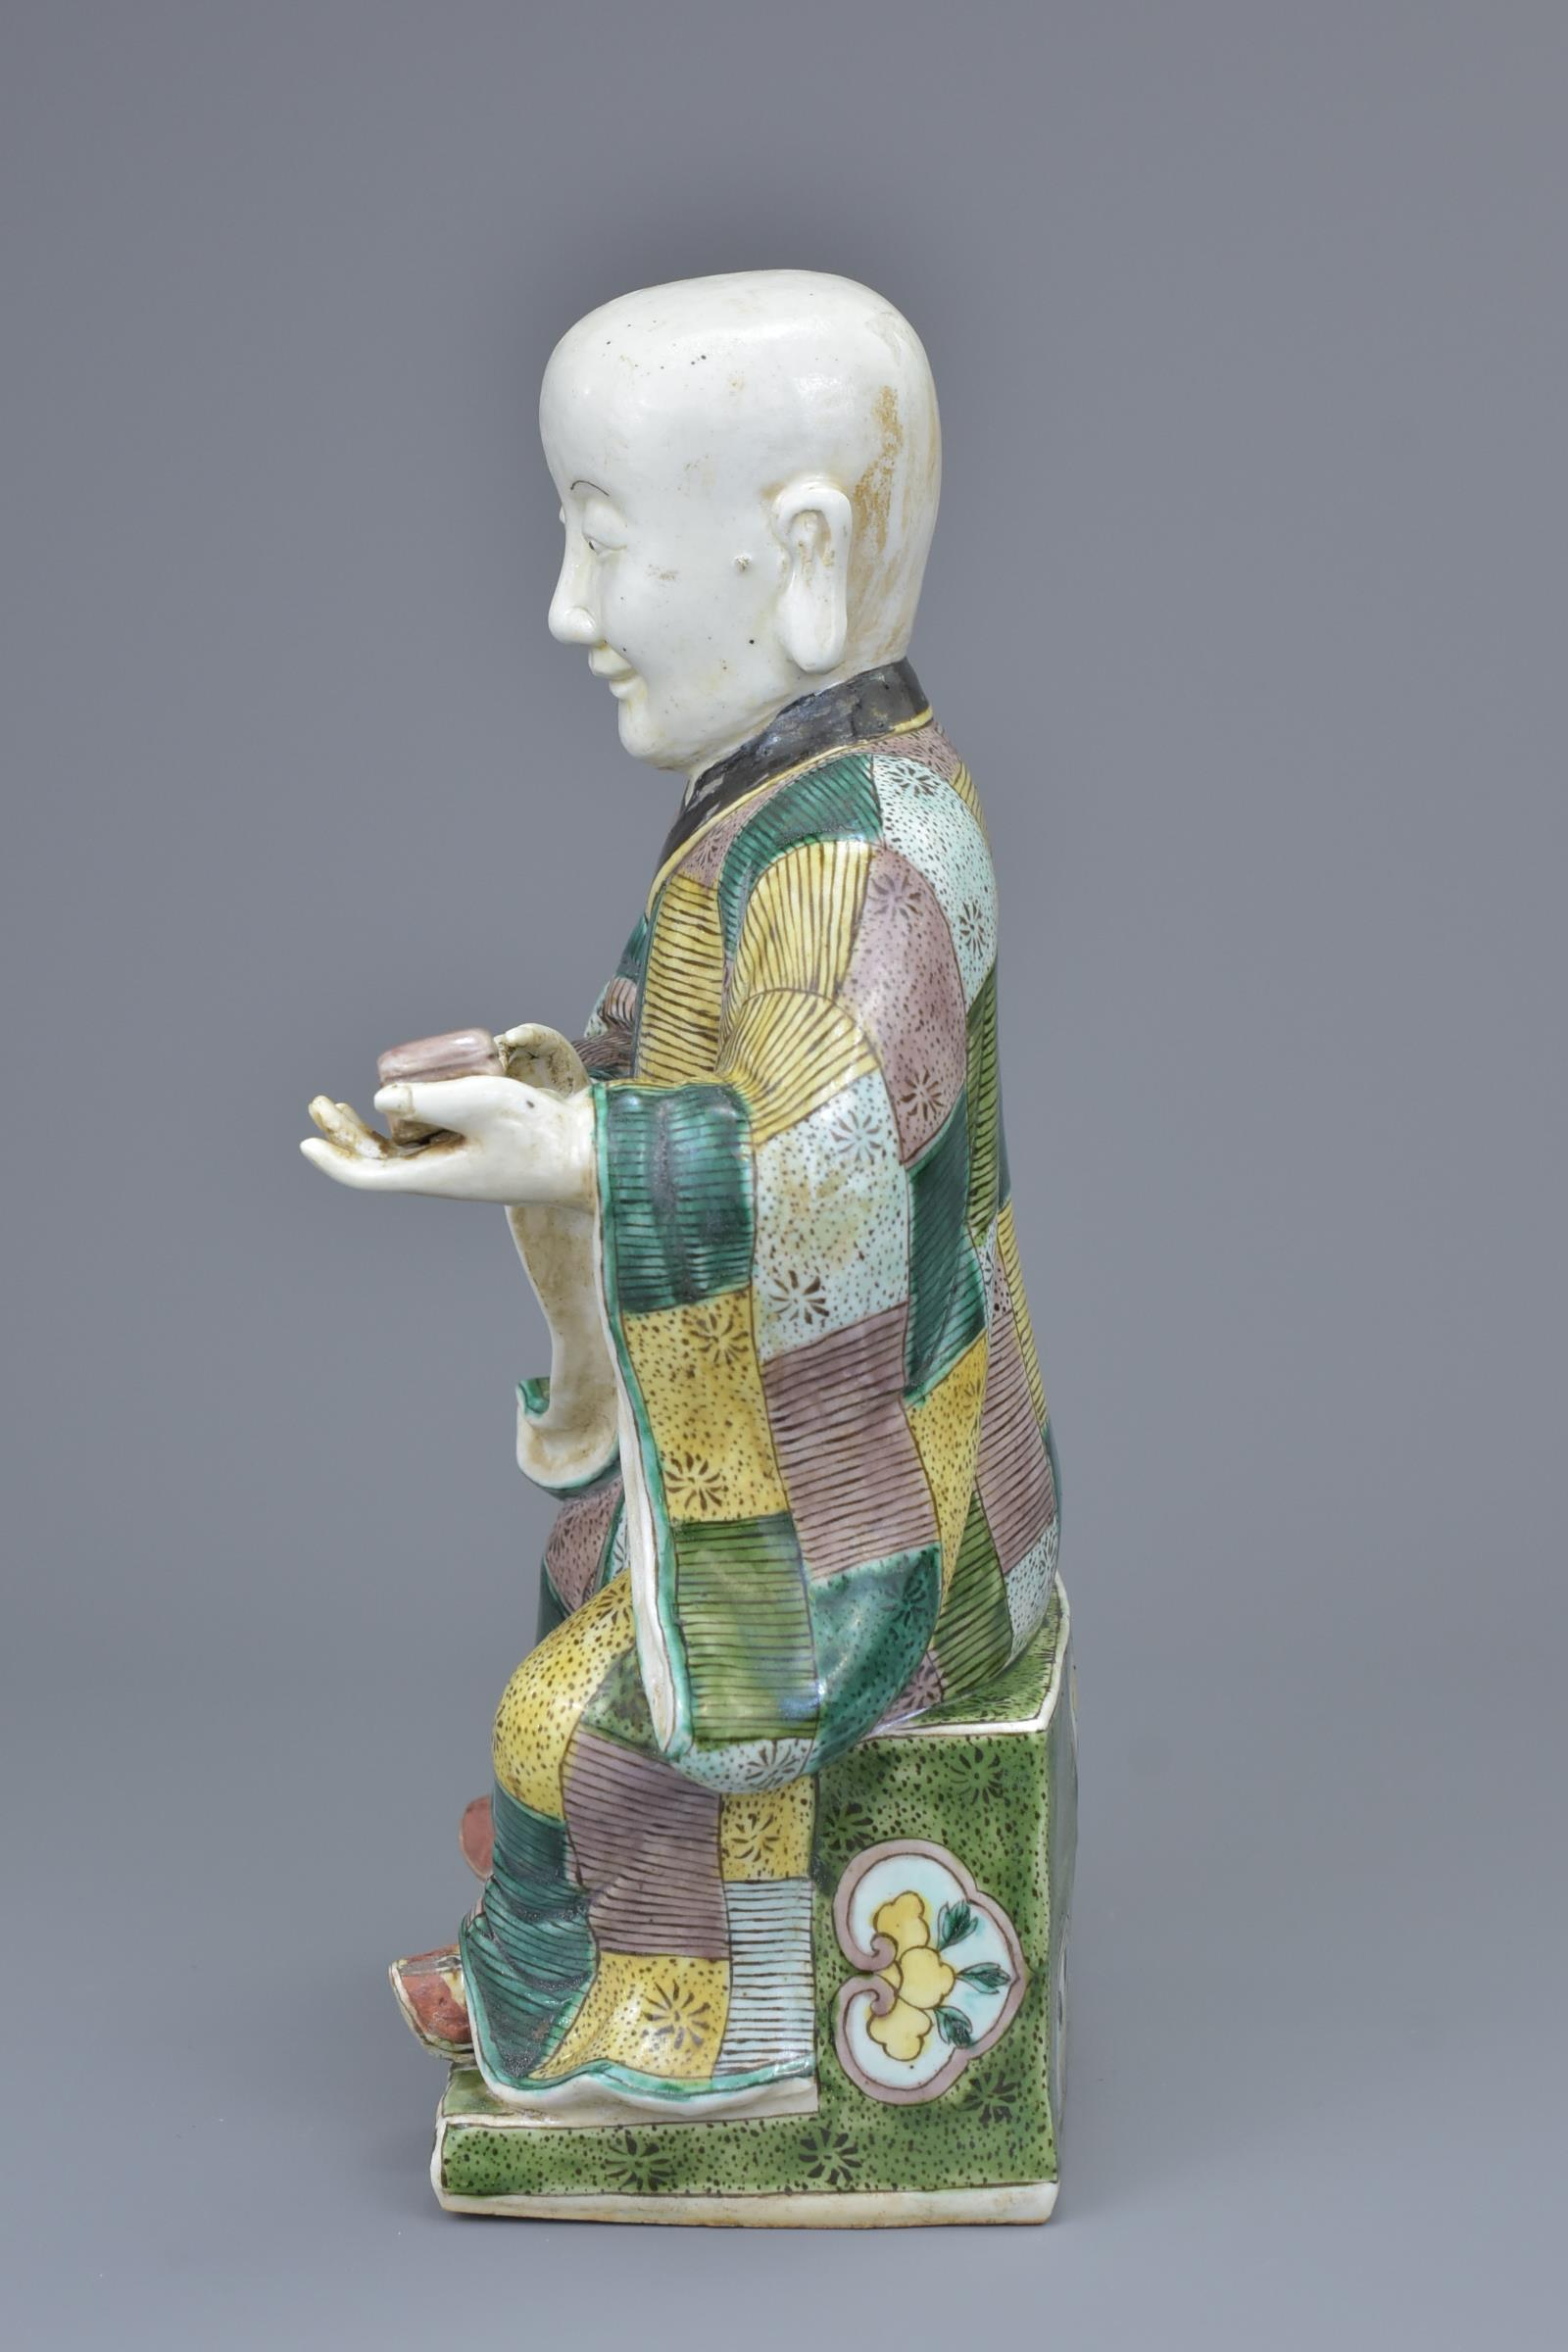 Lot 35 - A Chinese 19th C. Famille verte porcelain figure of a 'doctor'